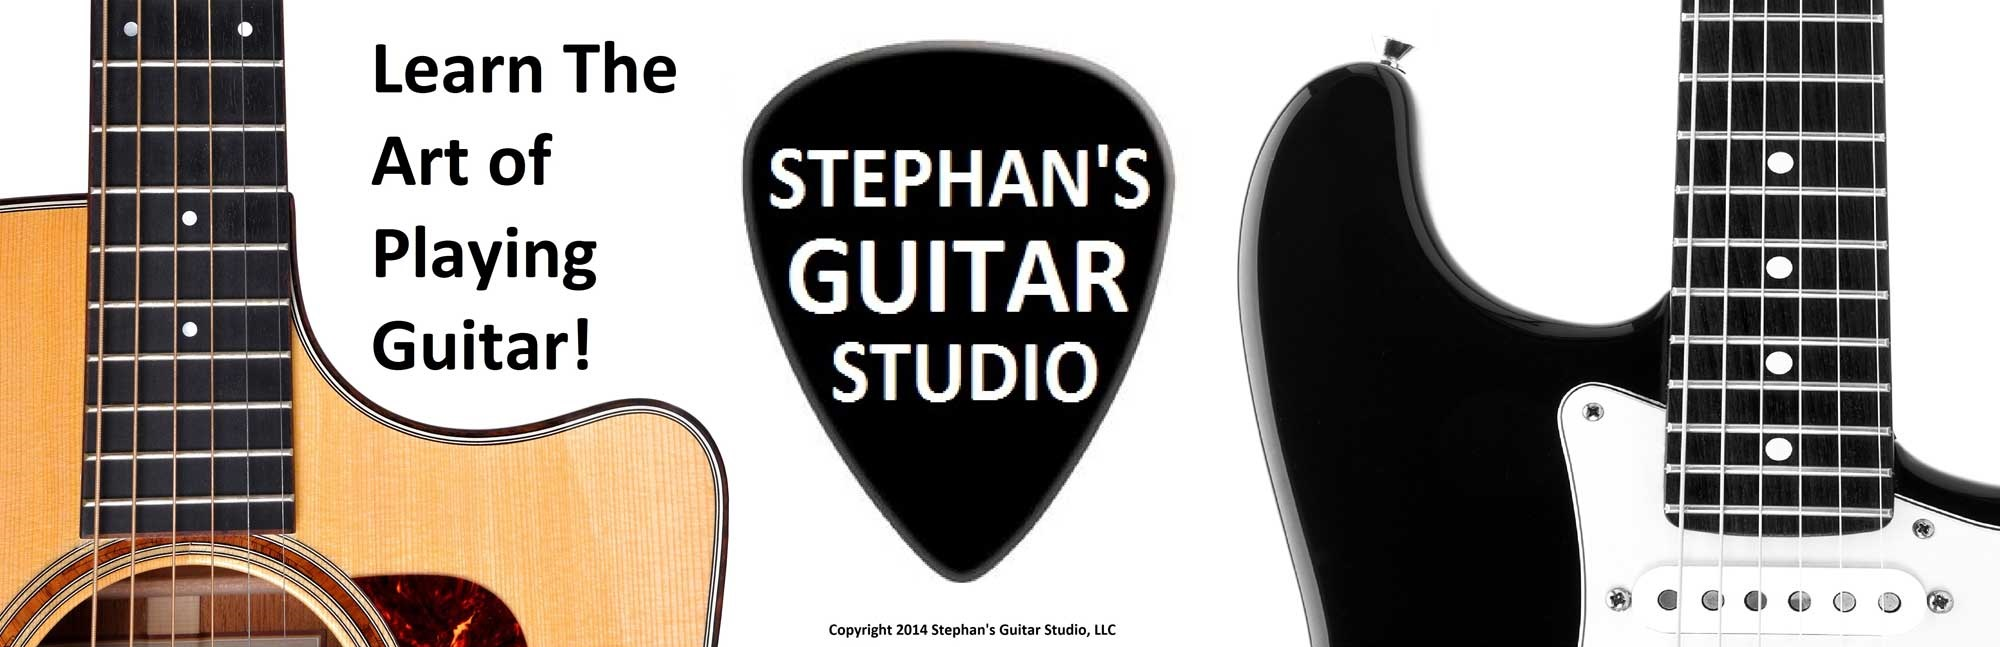 Live Online Guitar Lessons | Stephan's Guitar Studio, LLC